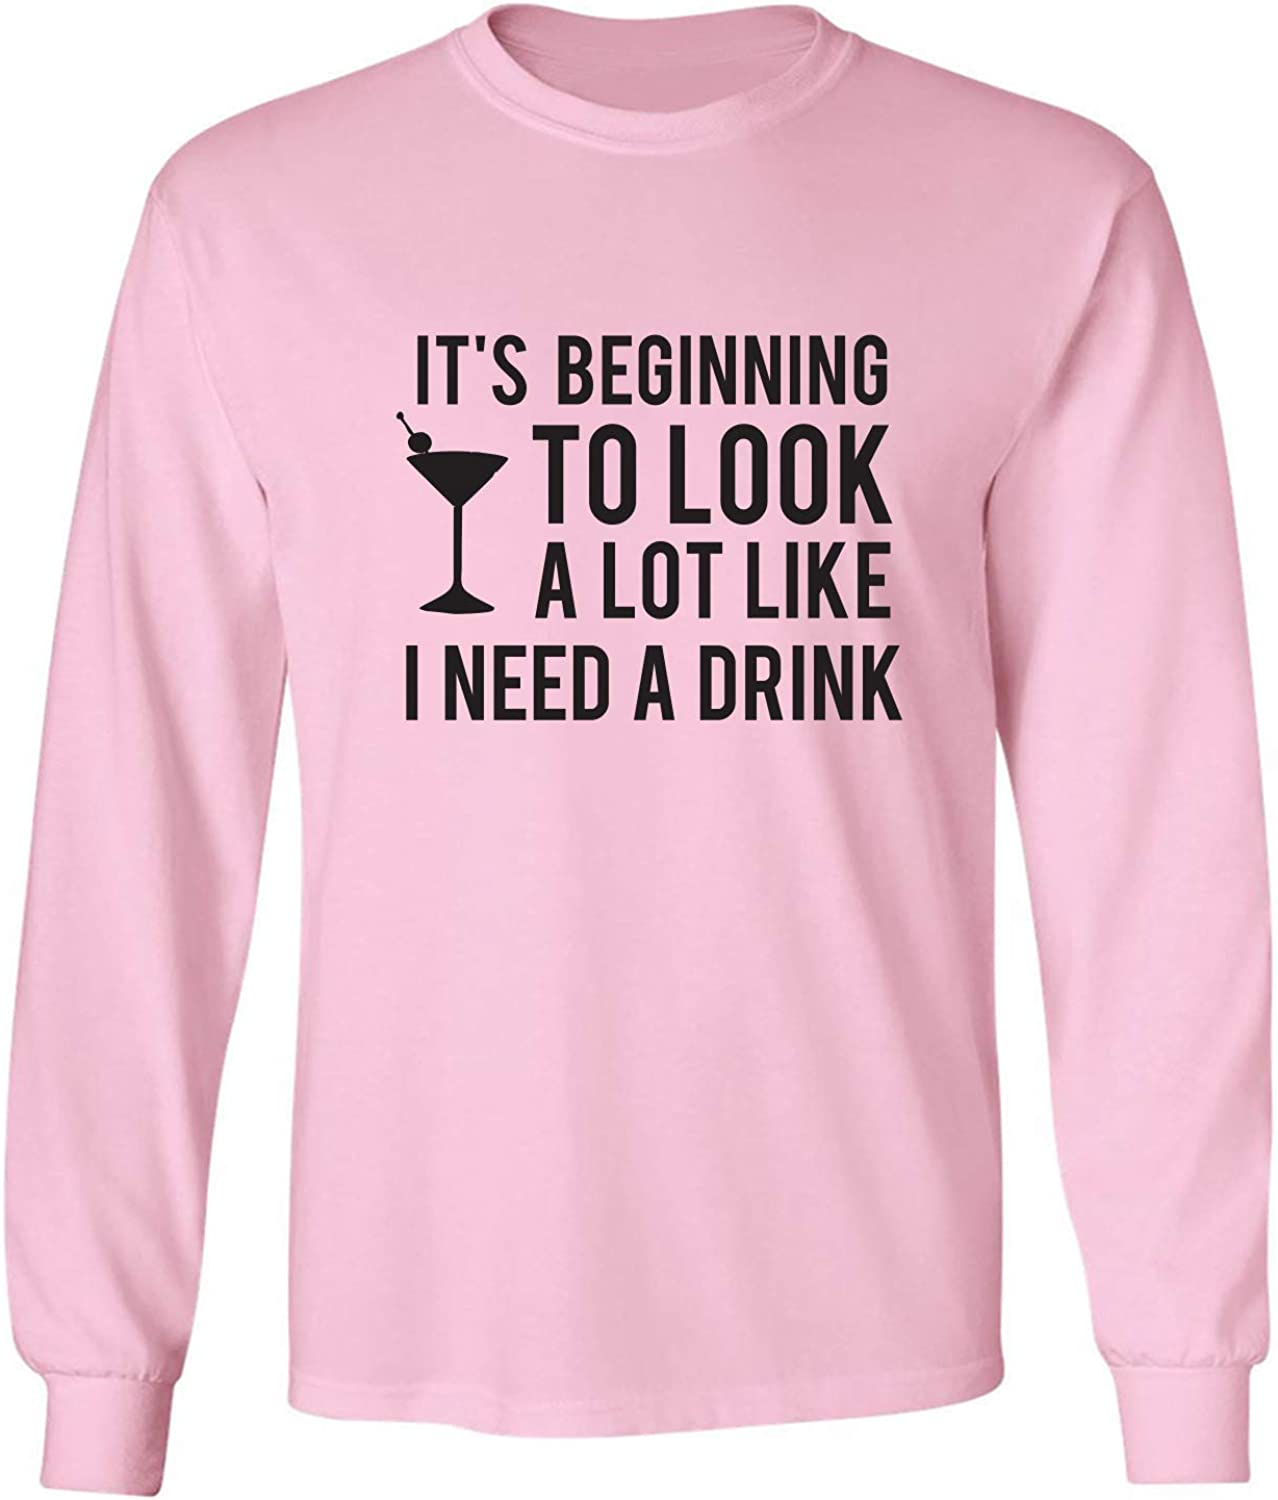 It's Beginning to Look A Lot Like Adult Long Sleeve T-Shirt in Pink - XXXXX-Large